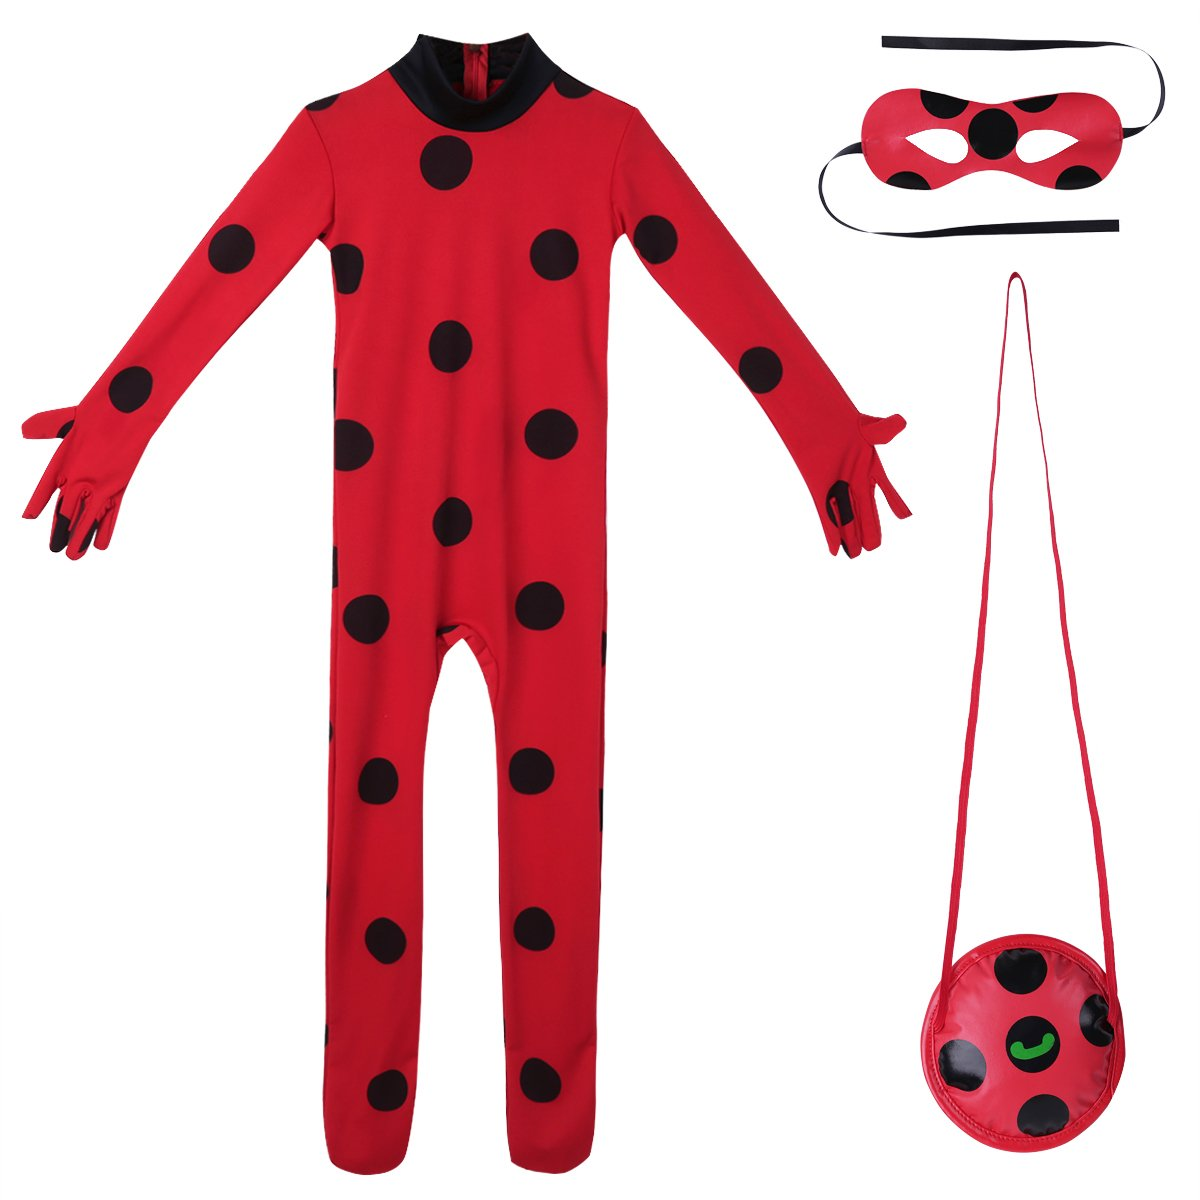 iEFiEL-Kinder-Mdchen-Halloween-Karneval-Cartoon-Marienkfer-Kostm-Overall-mit-Schawarze-Polka-Dots-Party-Cosplay-Kostm-3tlg-Set-Outfits-Rot-134-140